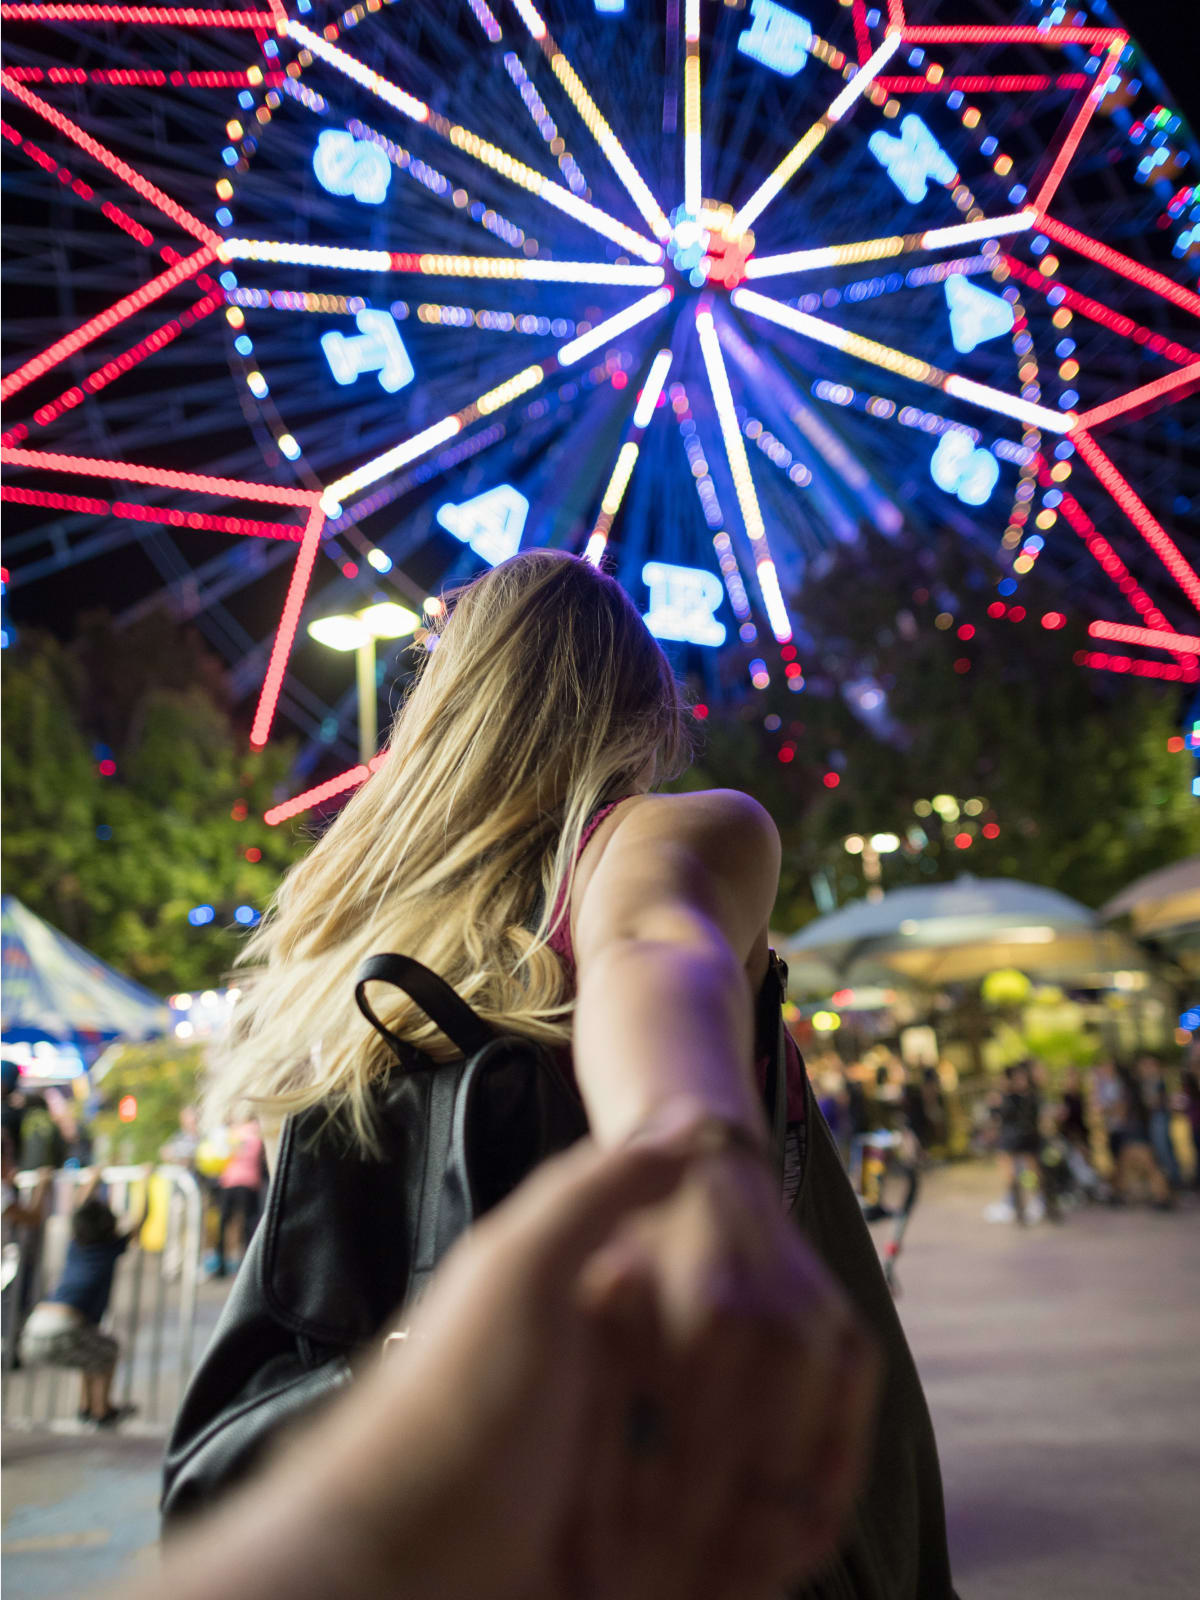 Woman about to ride the Texas Star ferris wheel